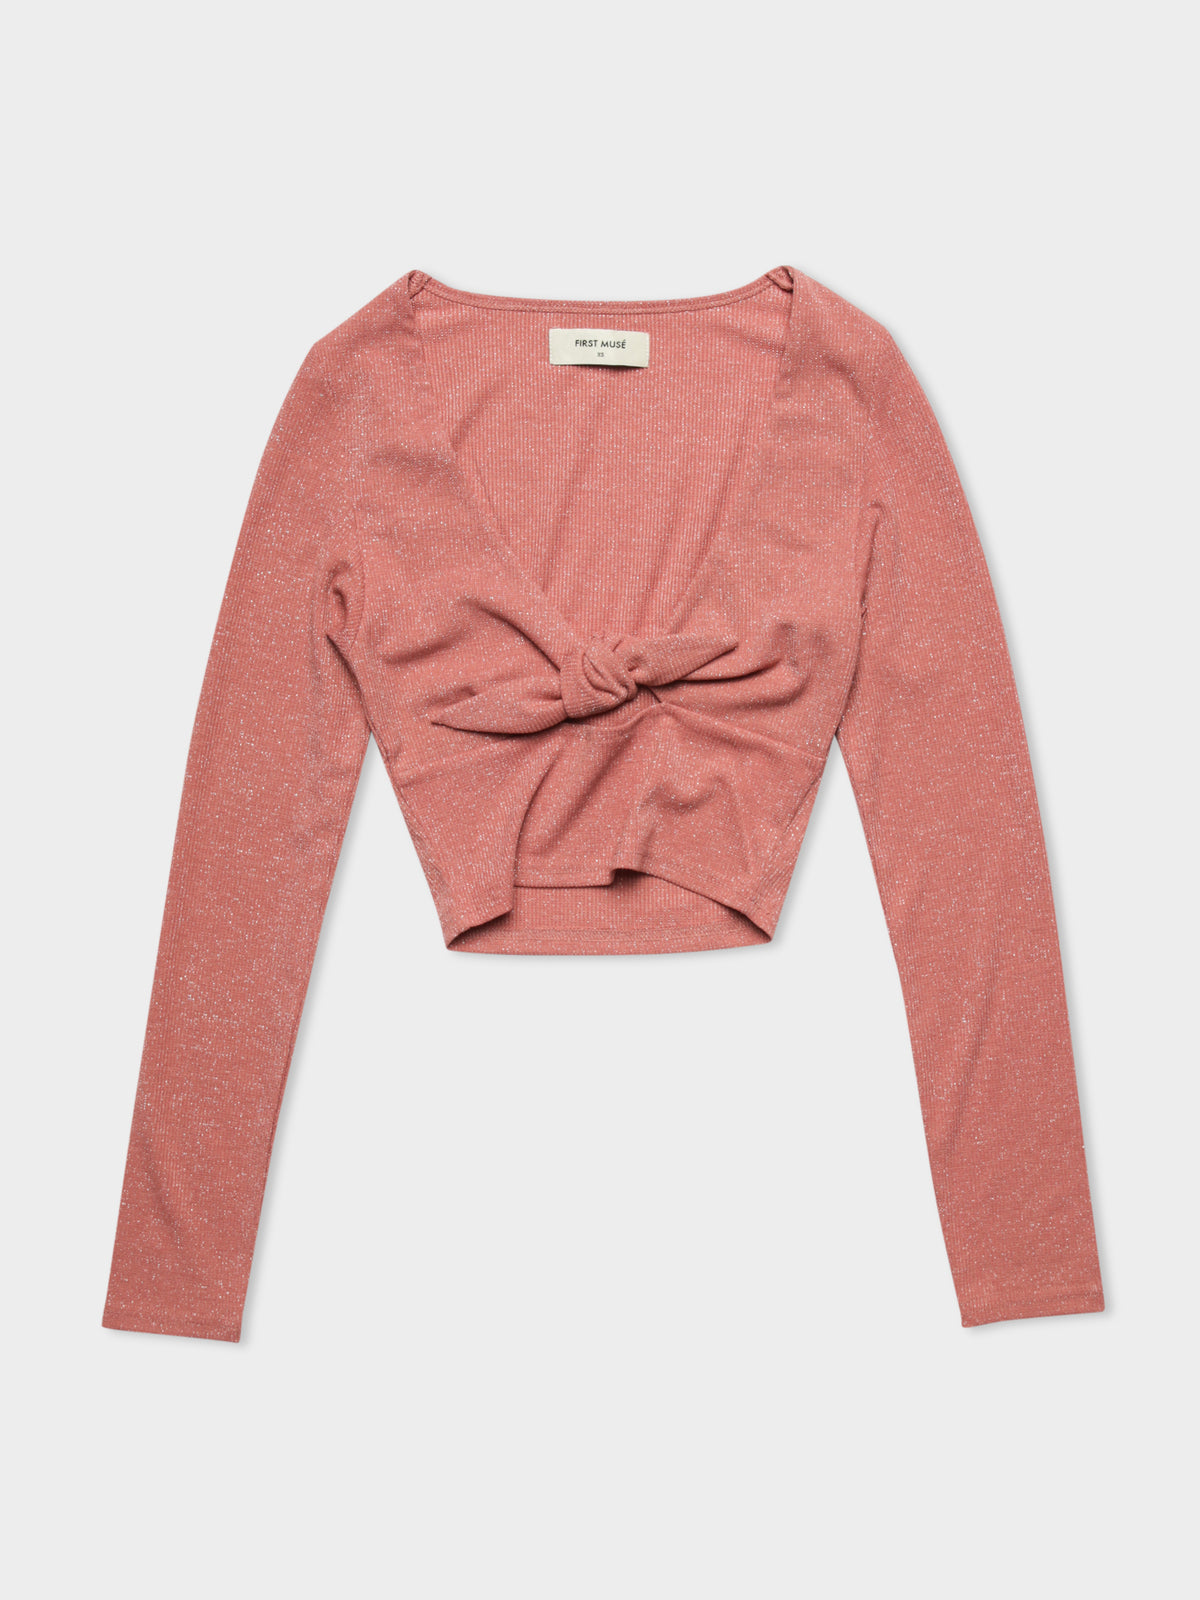 Soulmate Tie Top in Rose